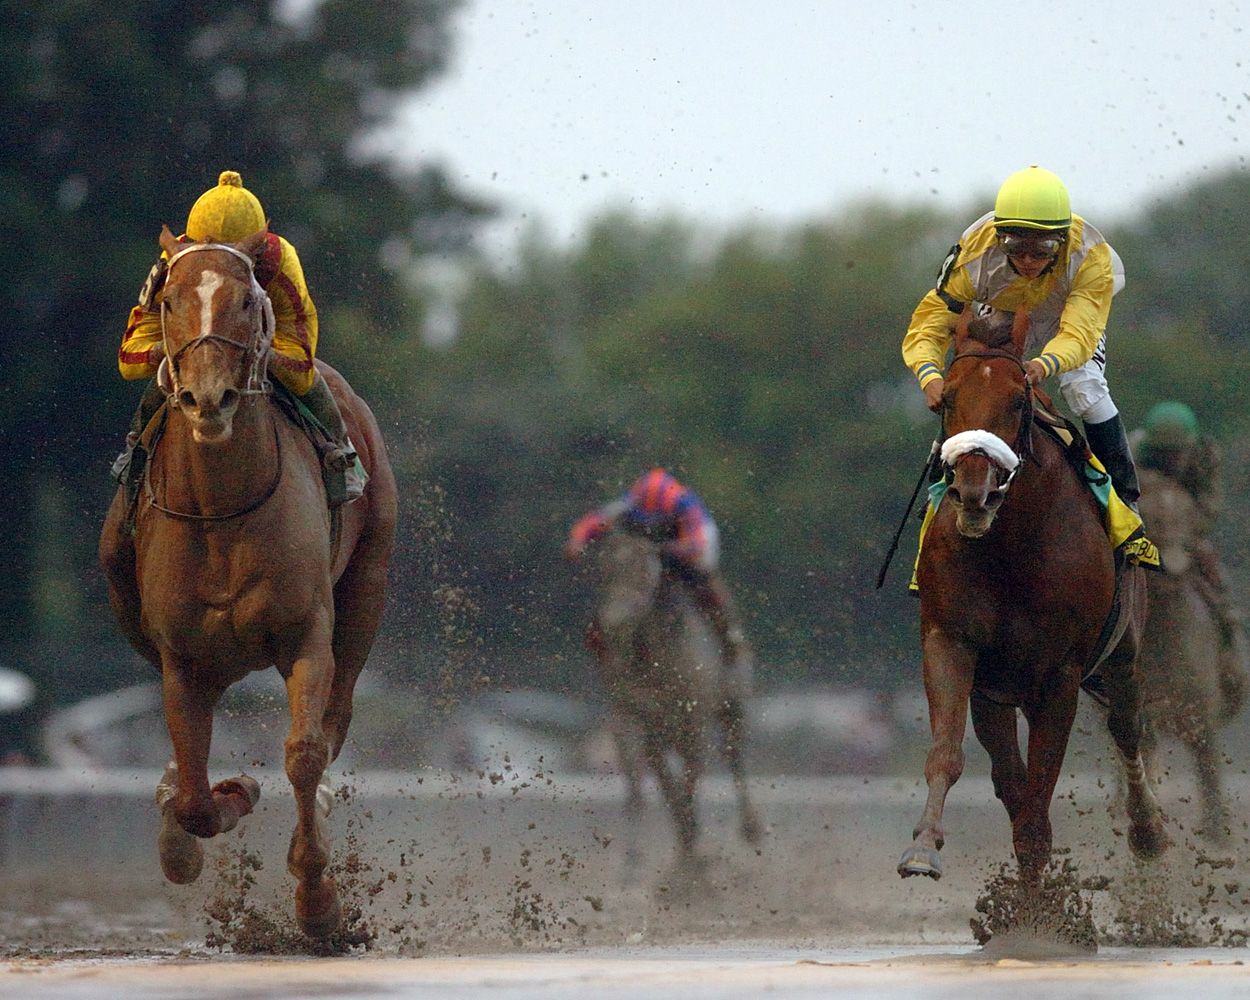 Curlin (Robby Albarado up) racing down the stretch in the 2008 Jockey Club Gold Cup at Belmont Park (NYRA)